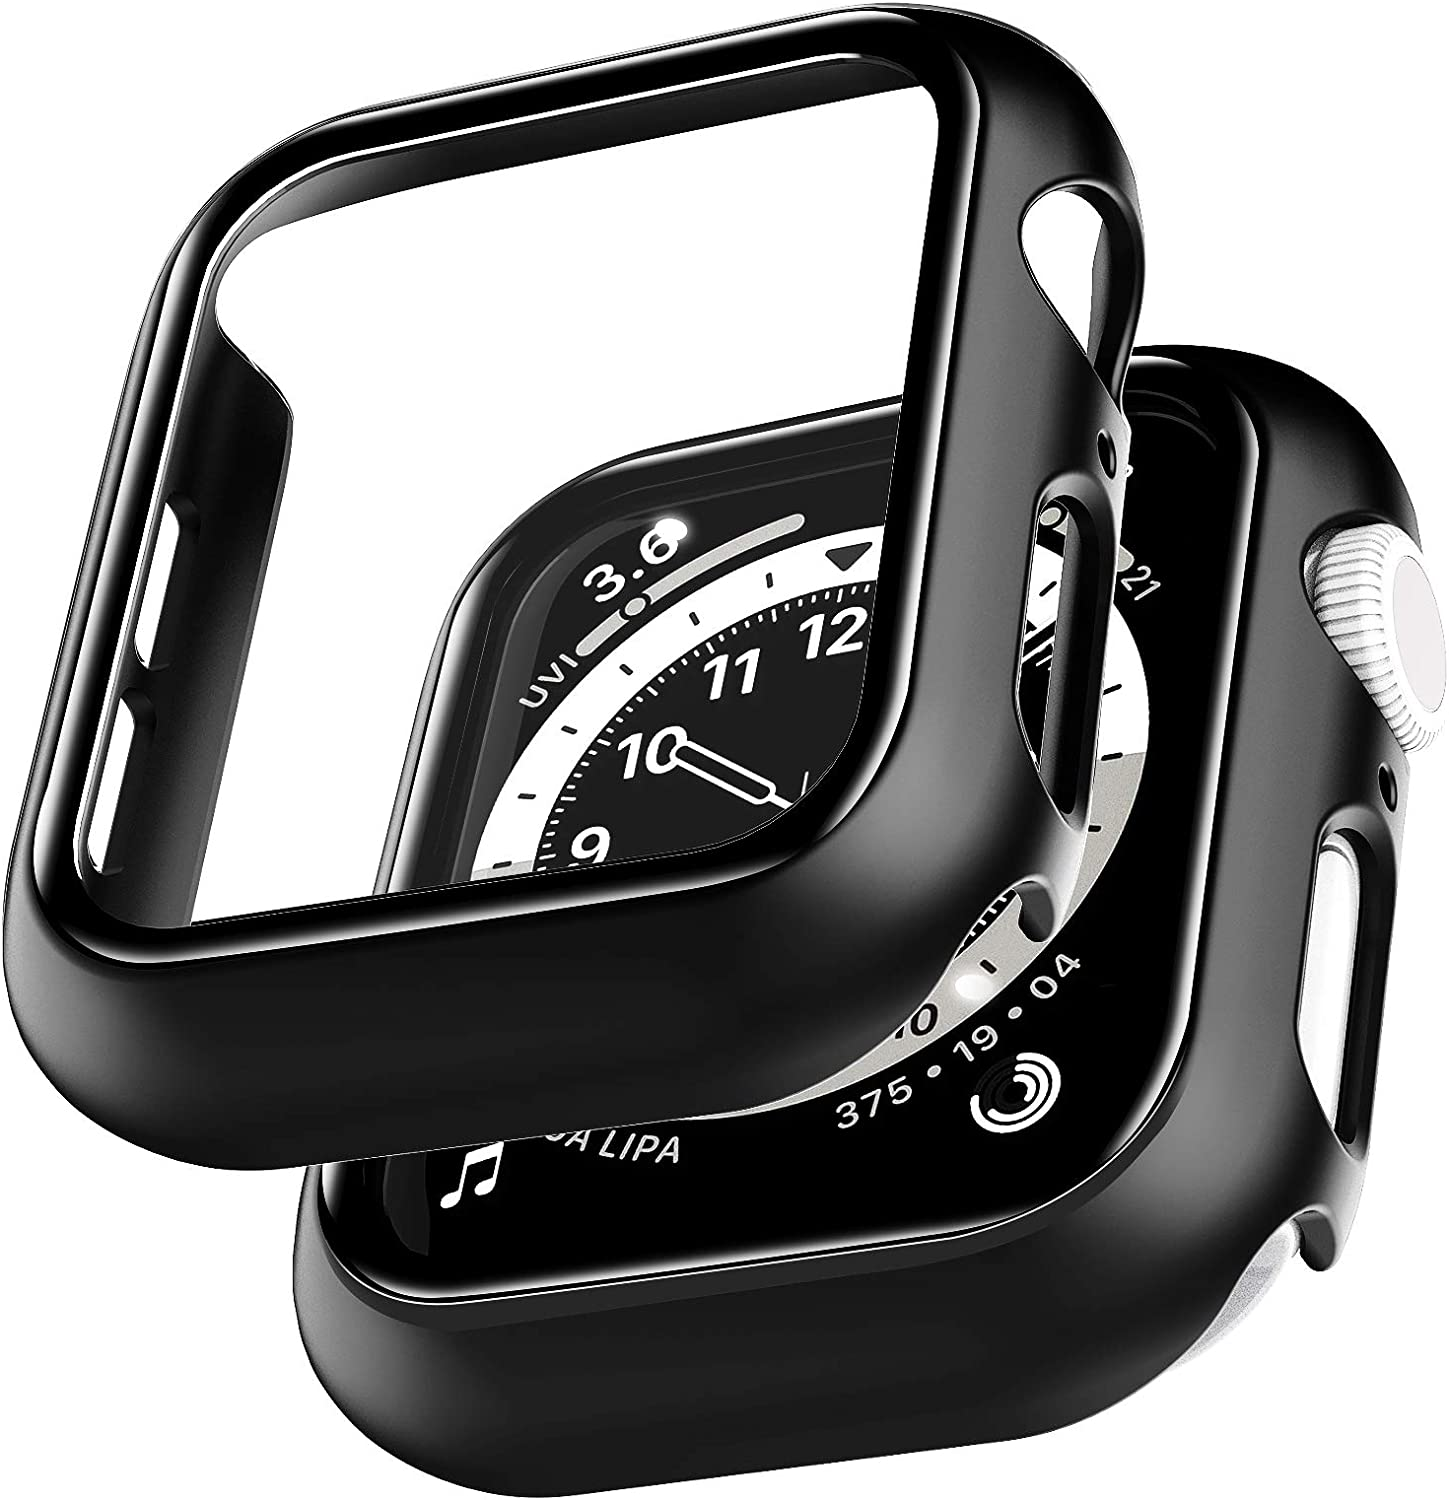 2 Pack LϟK Case for Apple Watch 40mm SE/Series 6/5/4 Built-in Tempered Glass Screen Protector, All-Around Ultra-Thin Bumper Full Cover Hard PC Protective Case for iWatch 40mm - Black